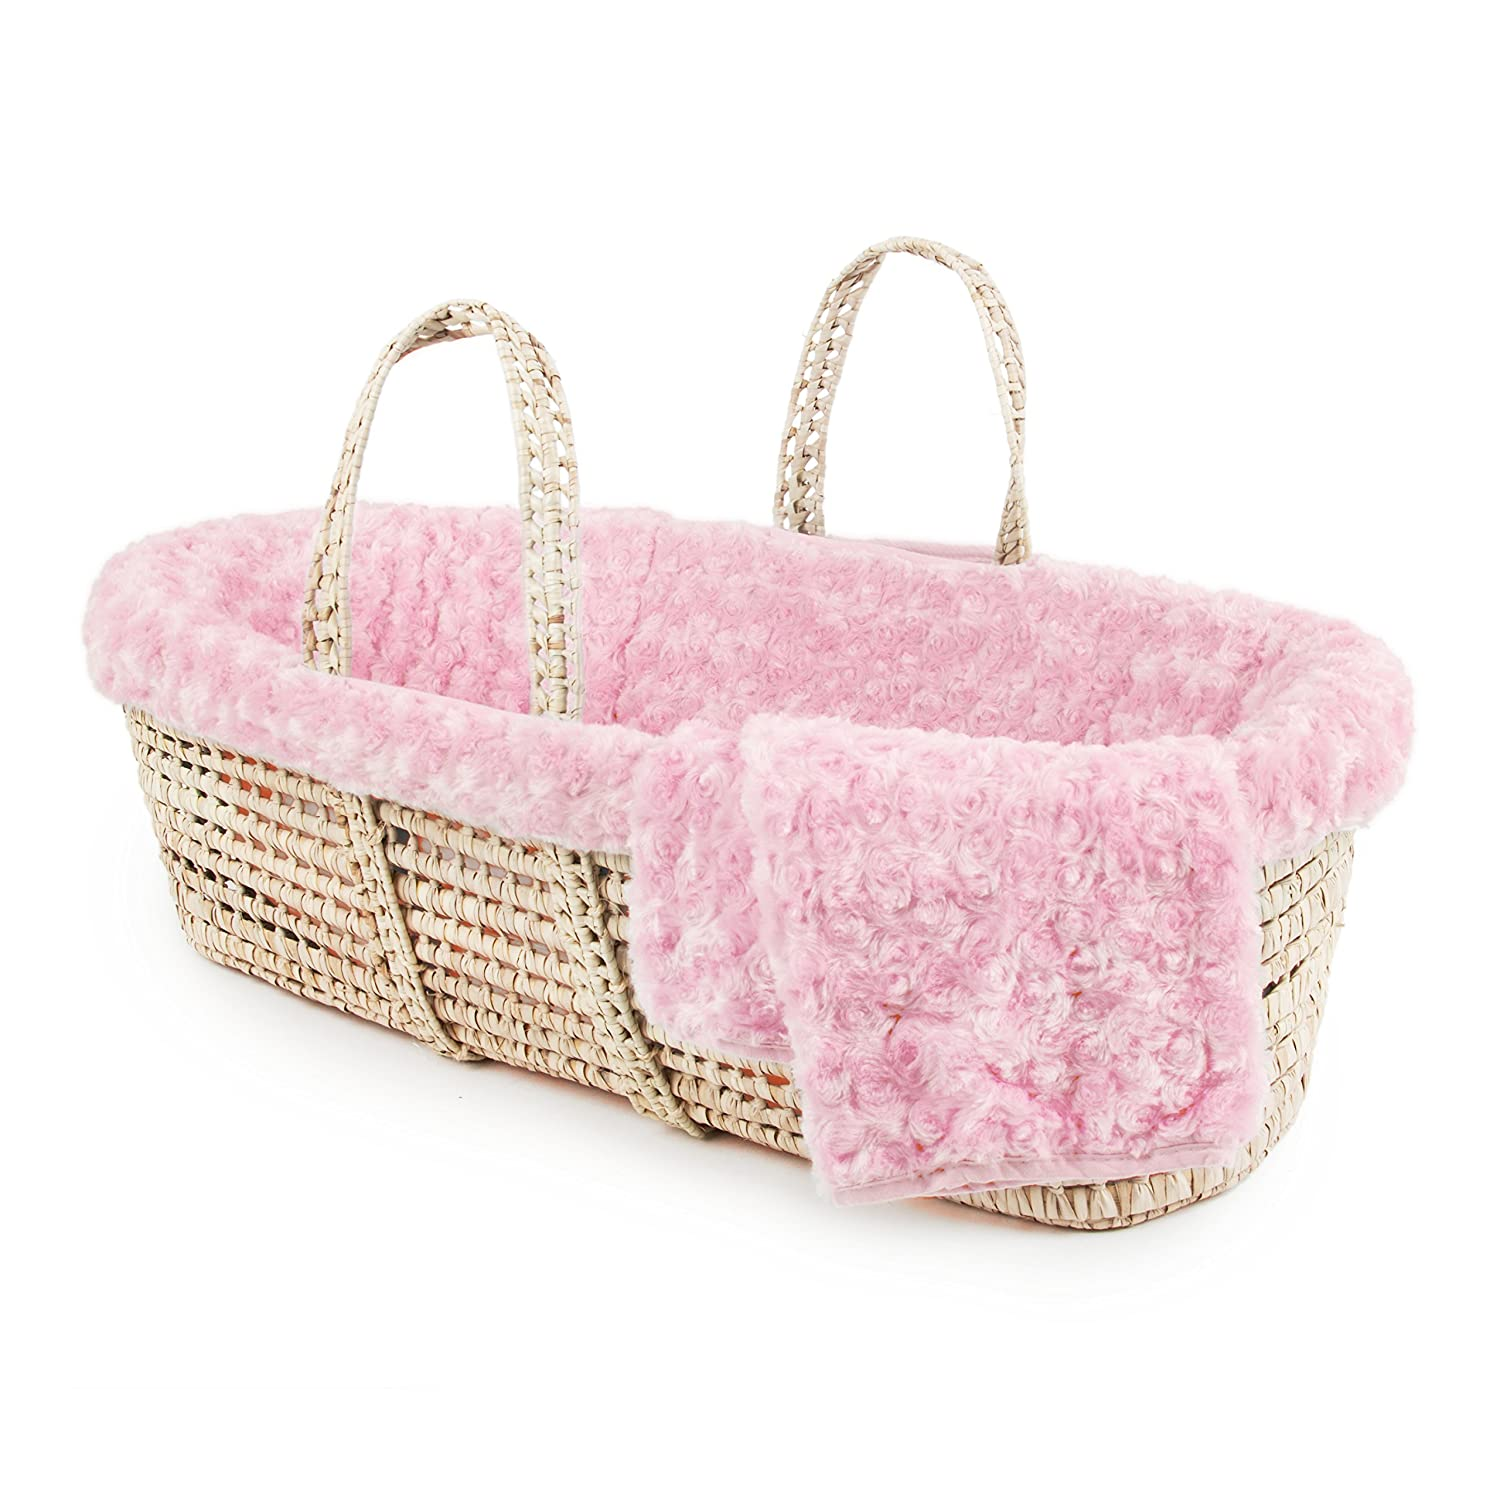 Tadpoles Twisted Fur Moses Basket and Bedding Set, Pink MBSTTF004